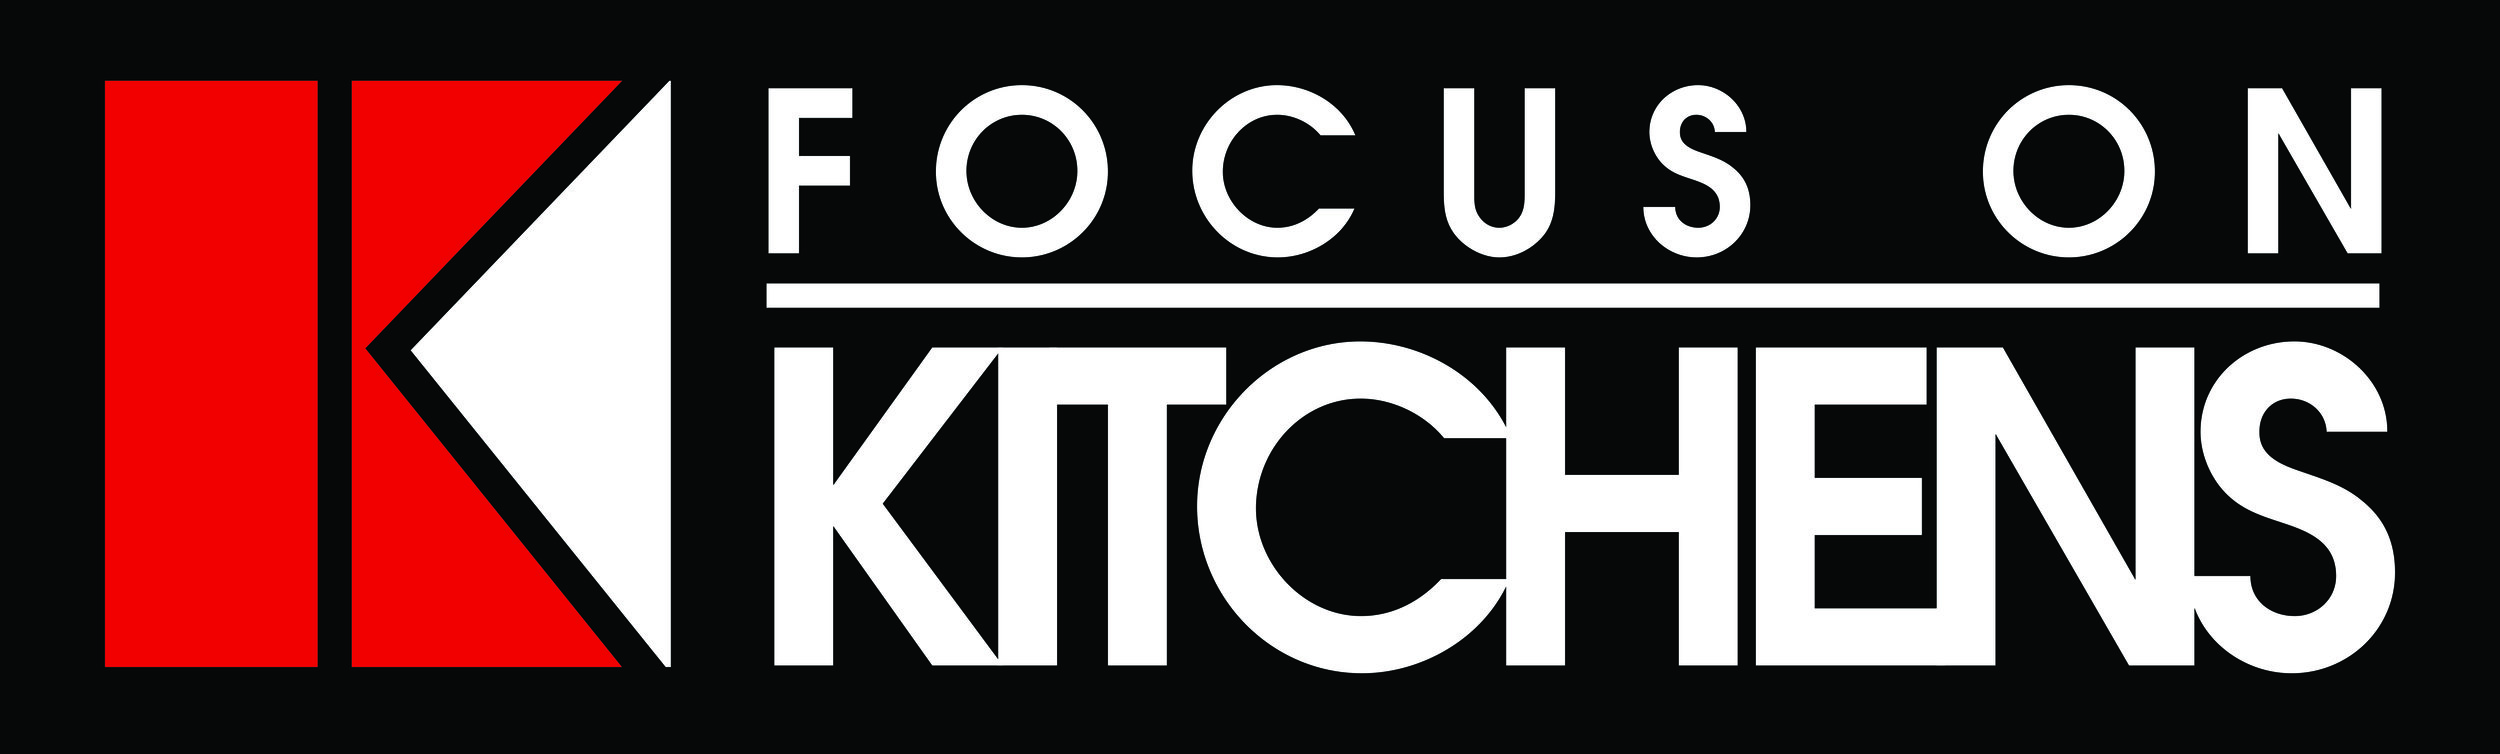 FOCUS ON KITCHENS LOGO BLACK 2016 (1).jpg